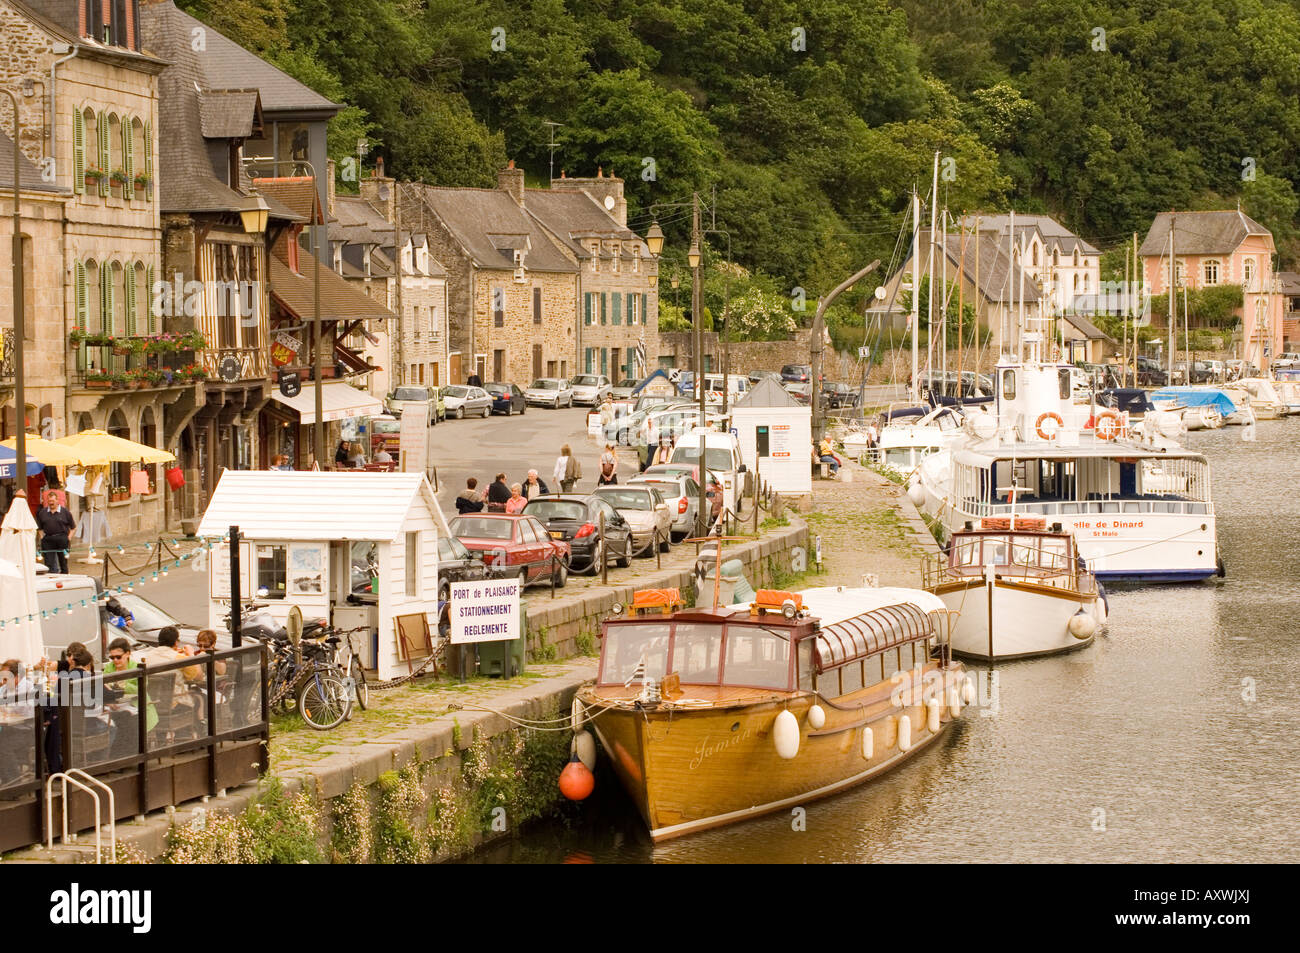 Boats on the River Rance and waterfront cafes in Port du Dinan, Brittany, France, Europe - Stock Image